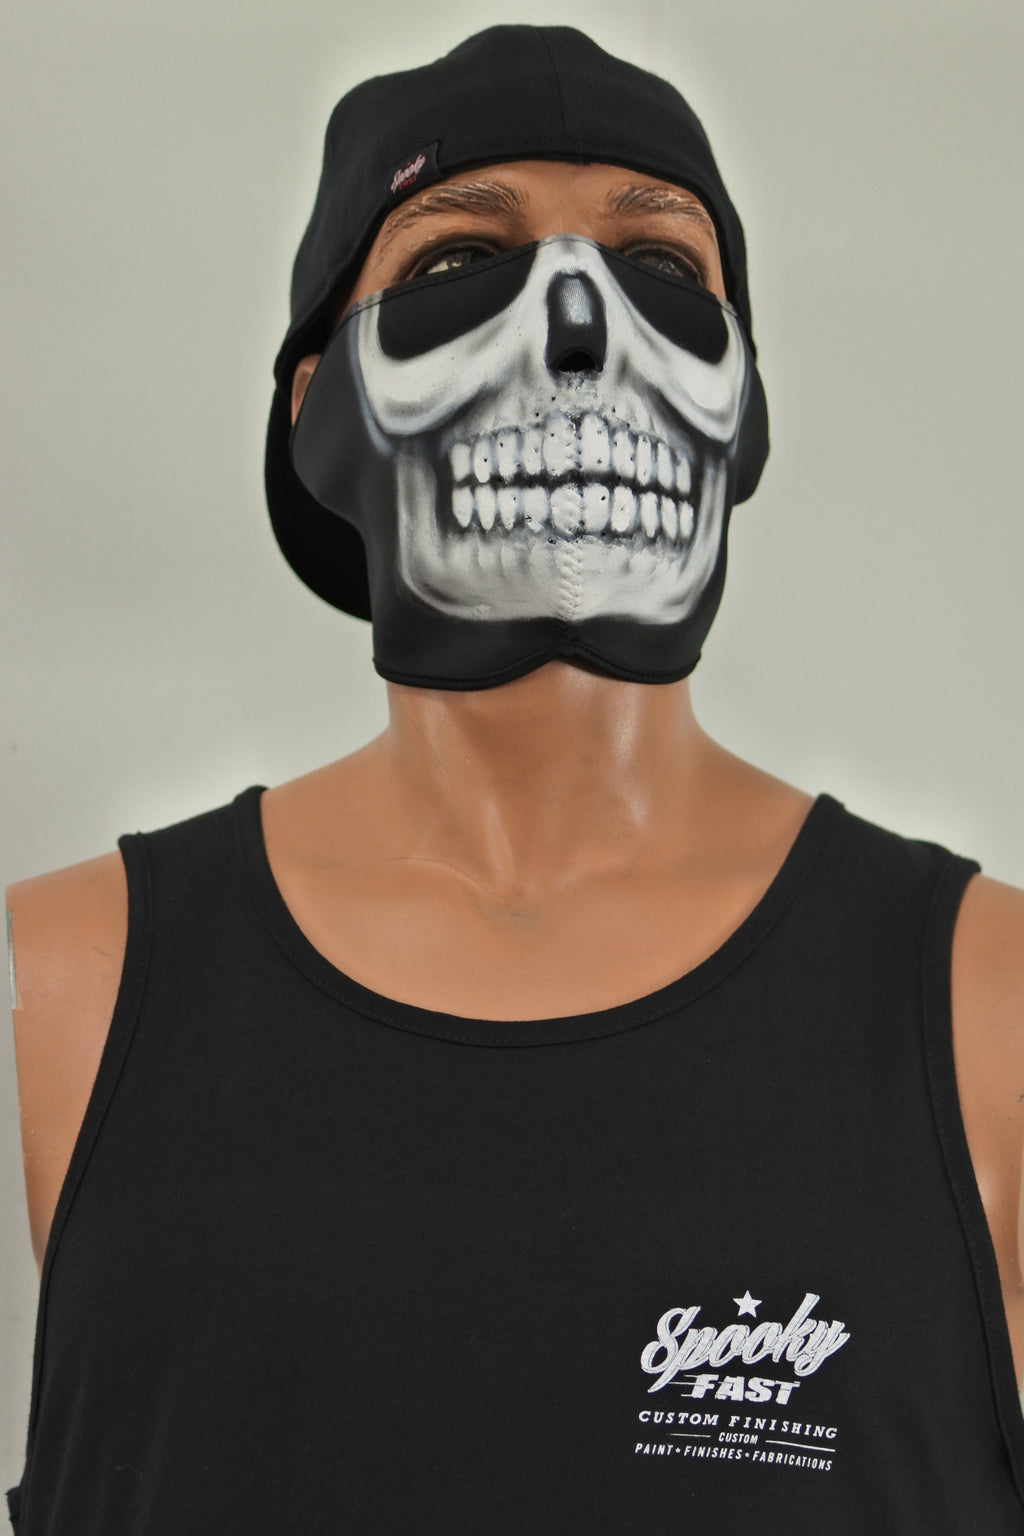 Spooky Fast Big Wheel Bagger Tank Top - Black